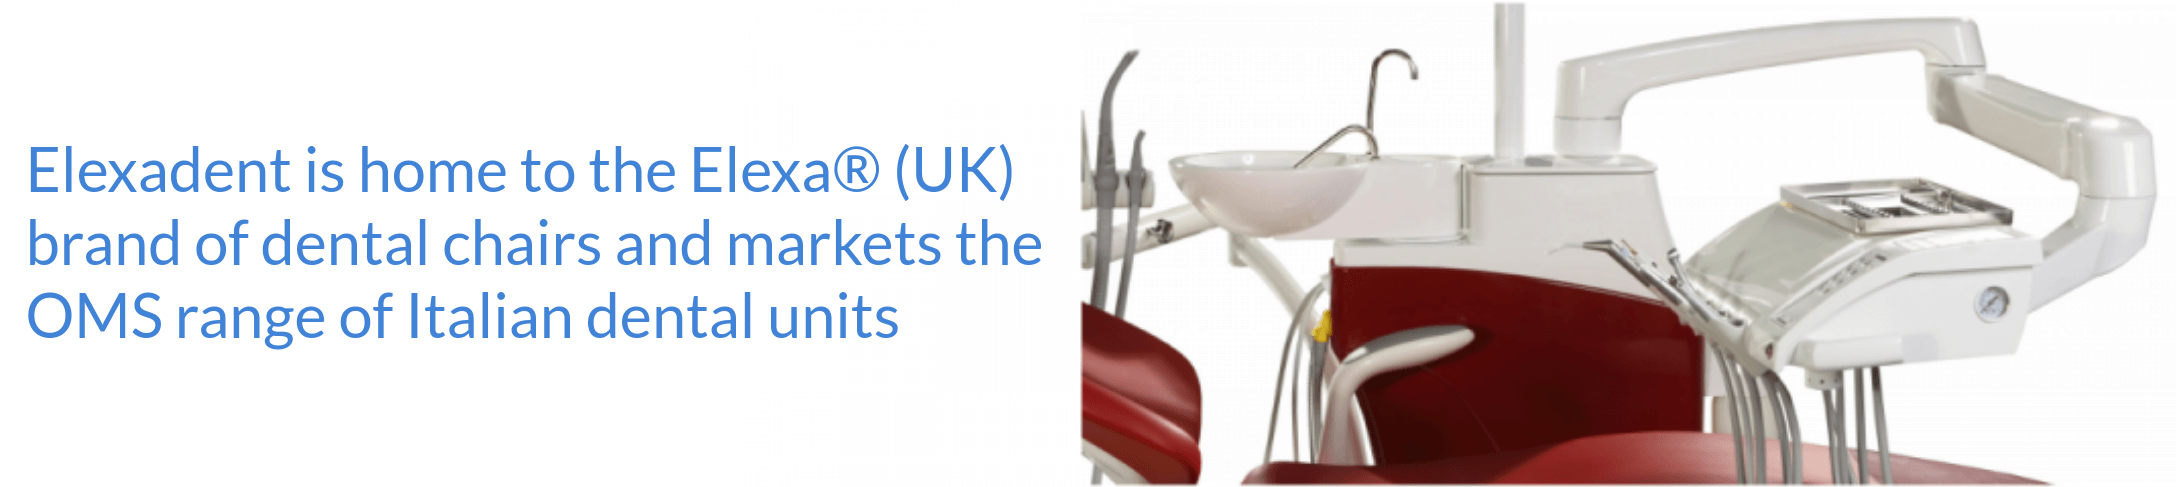 Elexadent is home to the Elexa® (UK) brand of dental chairs and markets the OMS range of Italian dental units